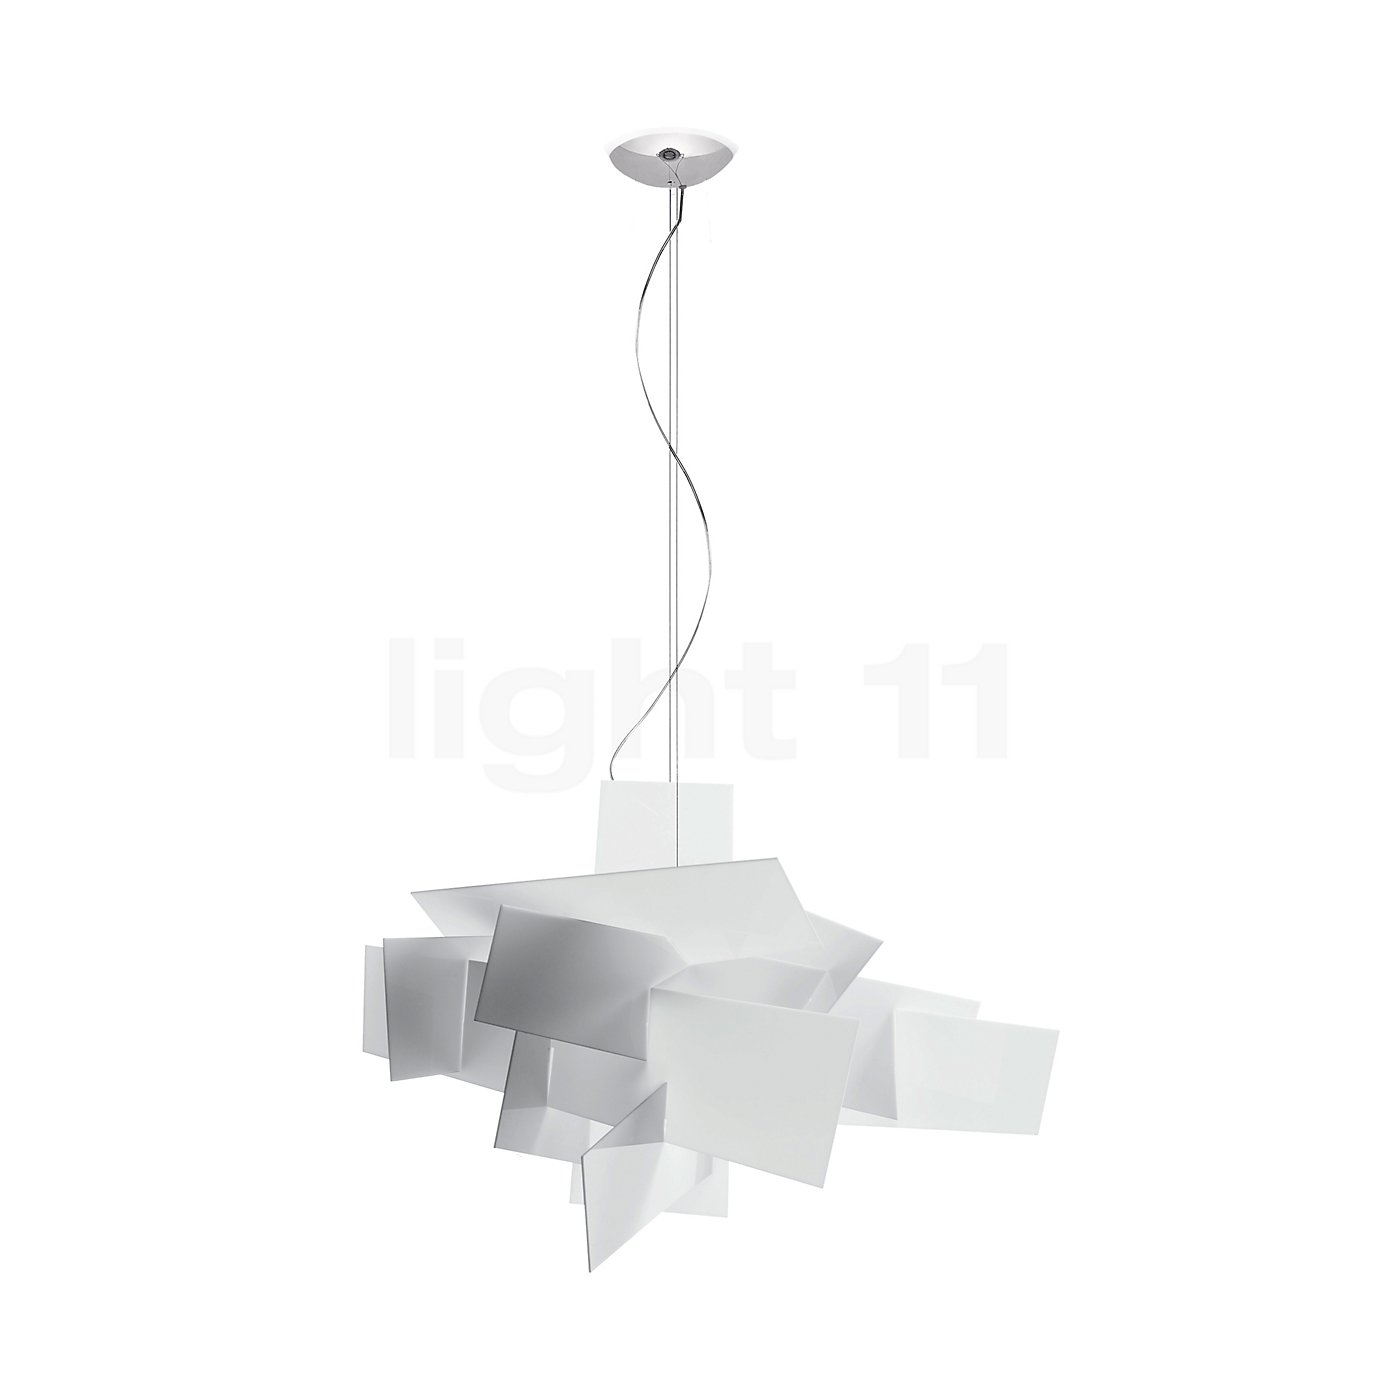 foscarini big bang sospensione led pendant lights buy at. Black Bedroom Furniture Sets. Home Design Ideas